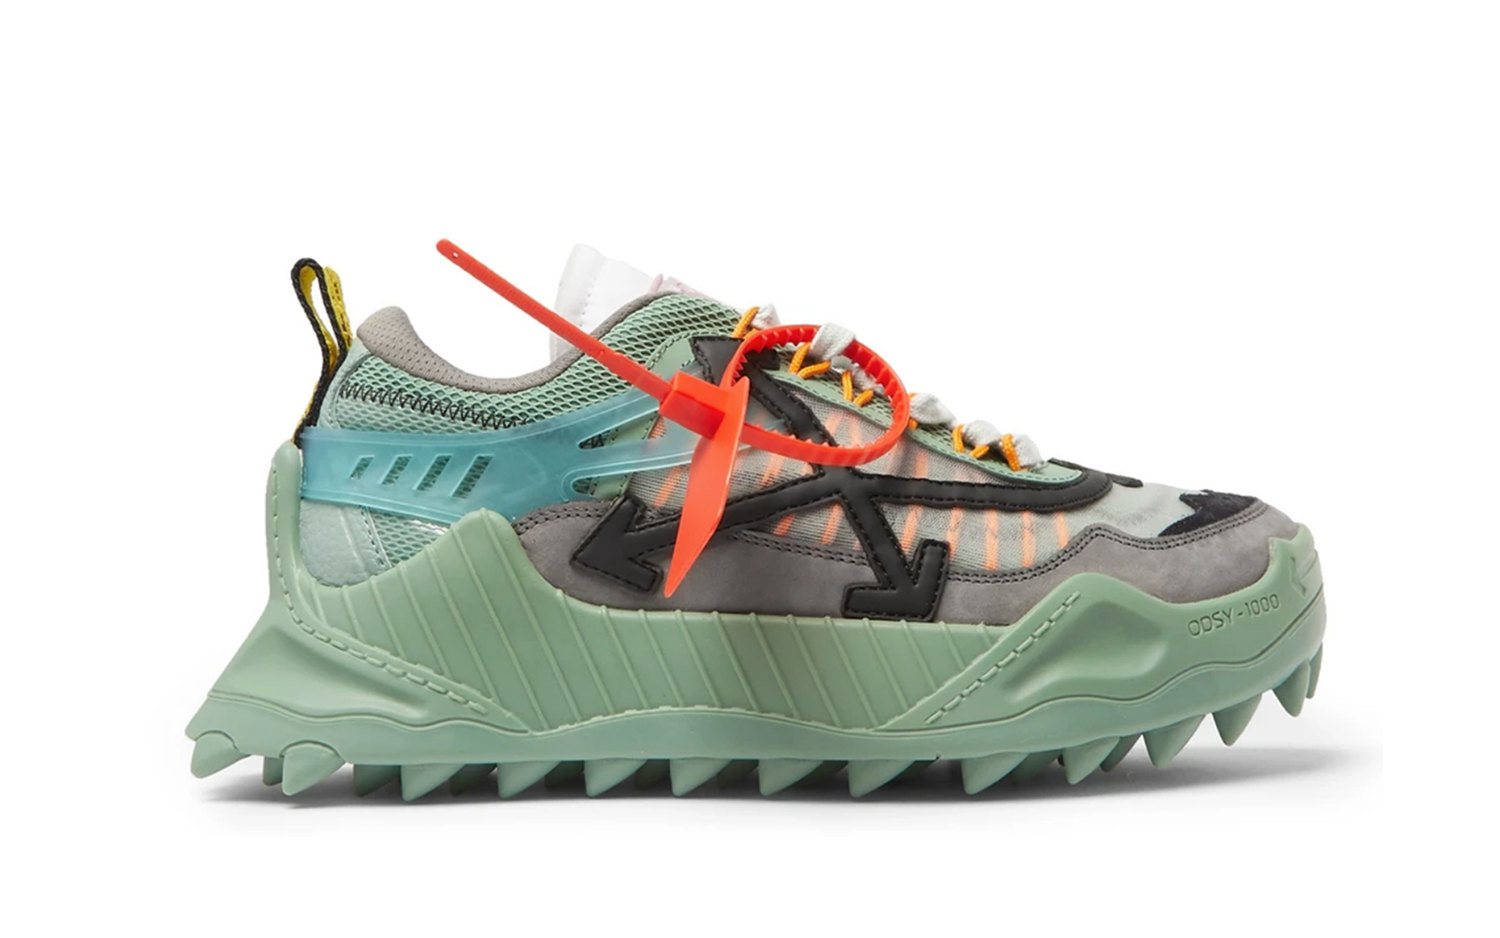 Off-White Odsy-1000 Low Top Sneakers, €515